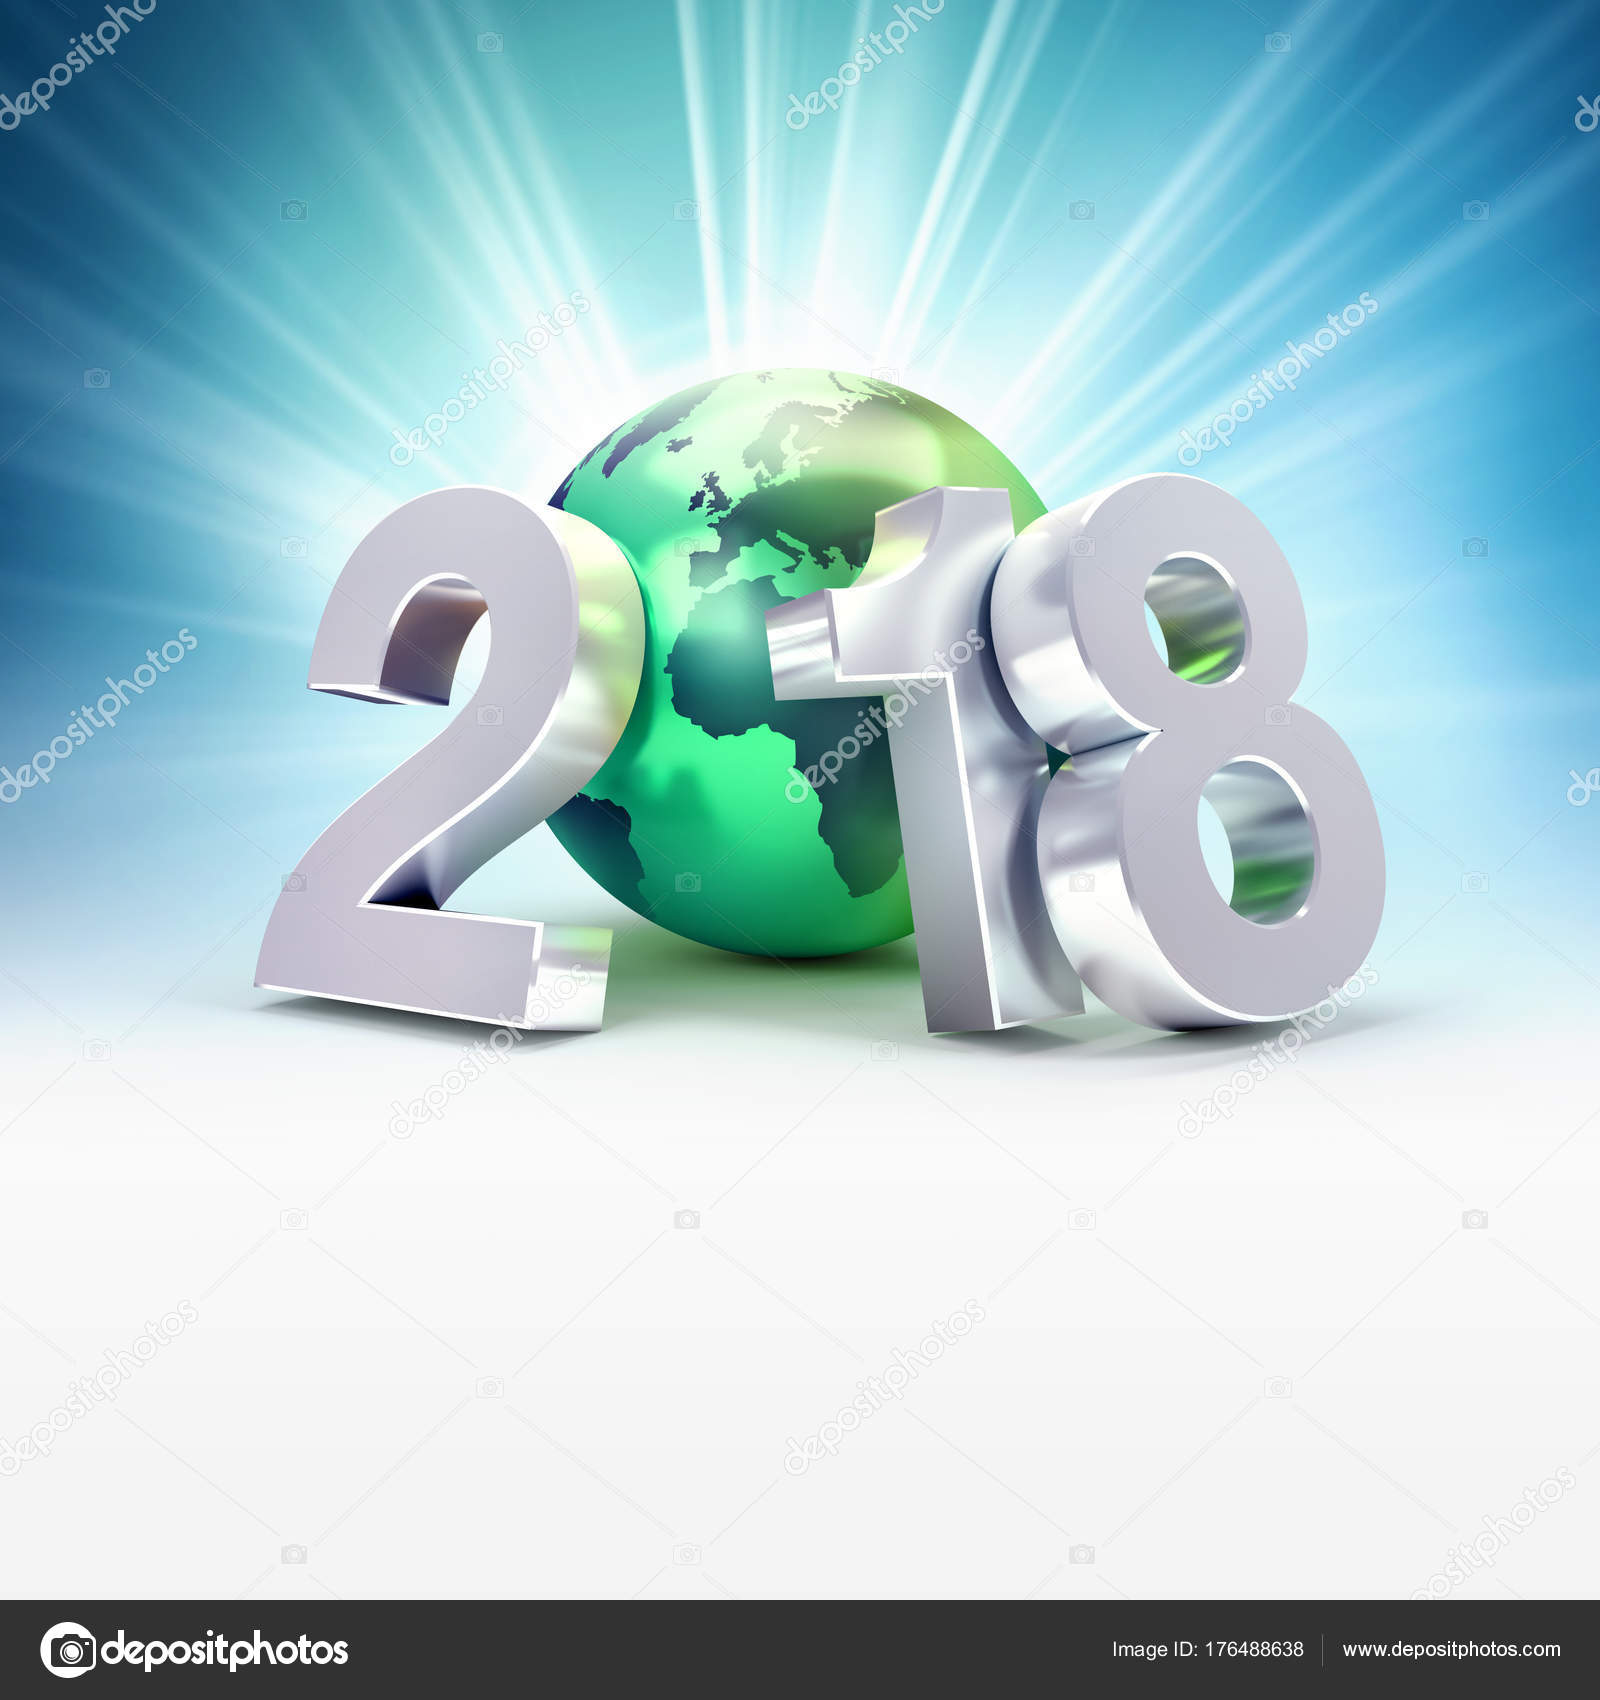 2018 greeting symbol for environment stock photo titoonz 176488638 2018 greeting symbol for environment stock photo buycottarizona Image collections